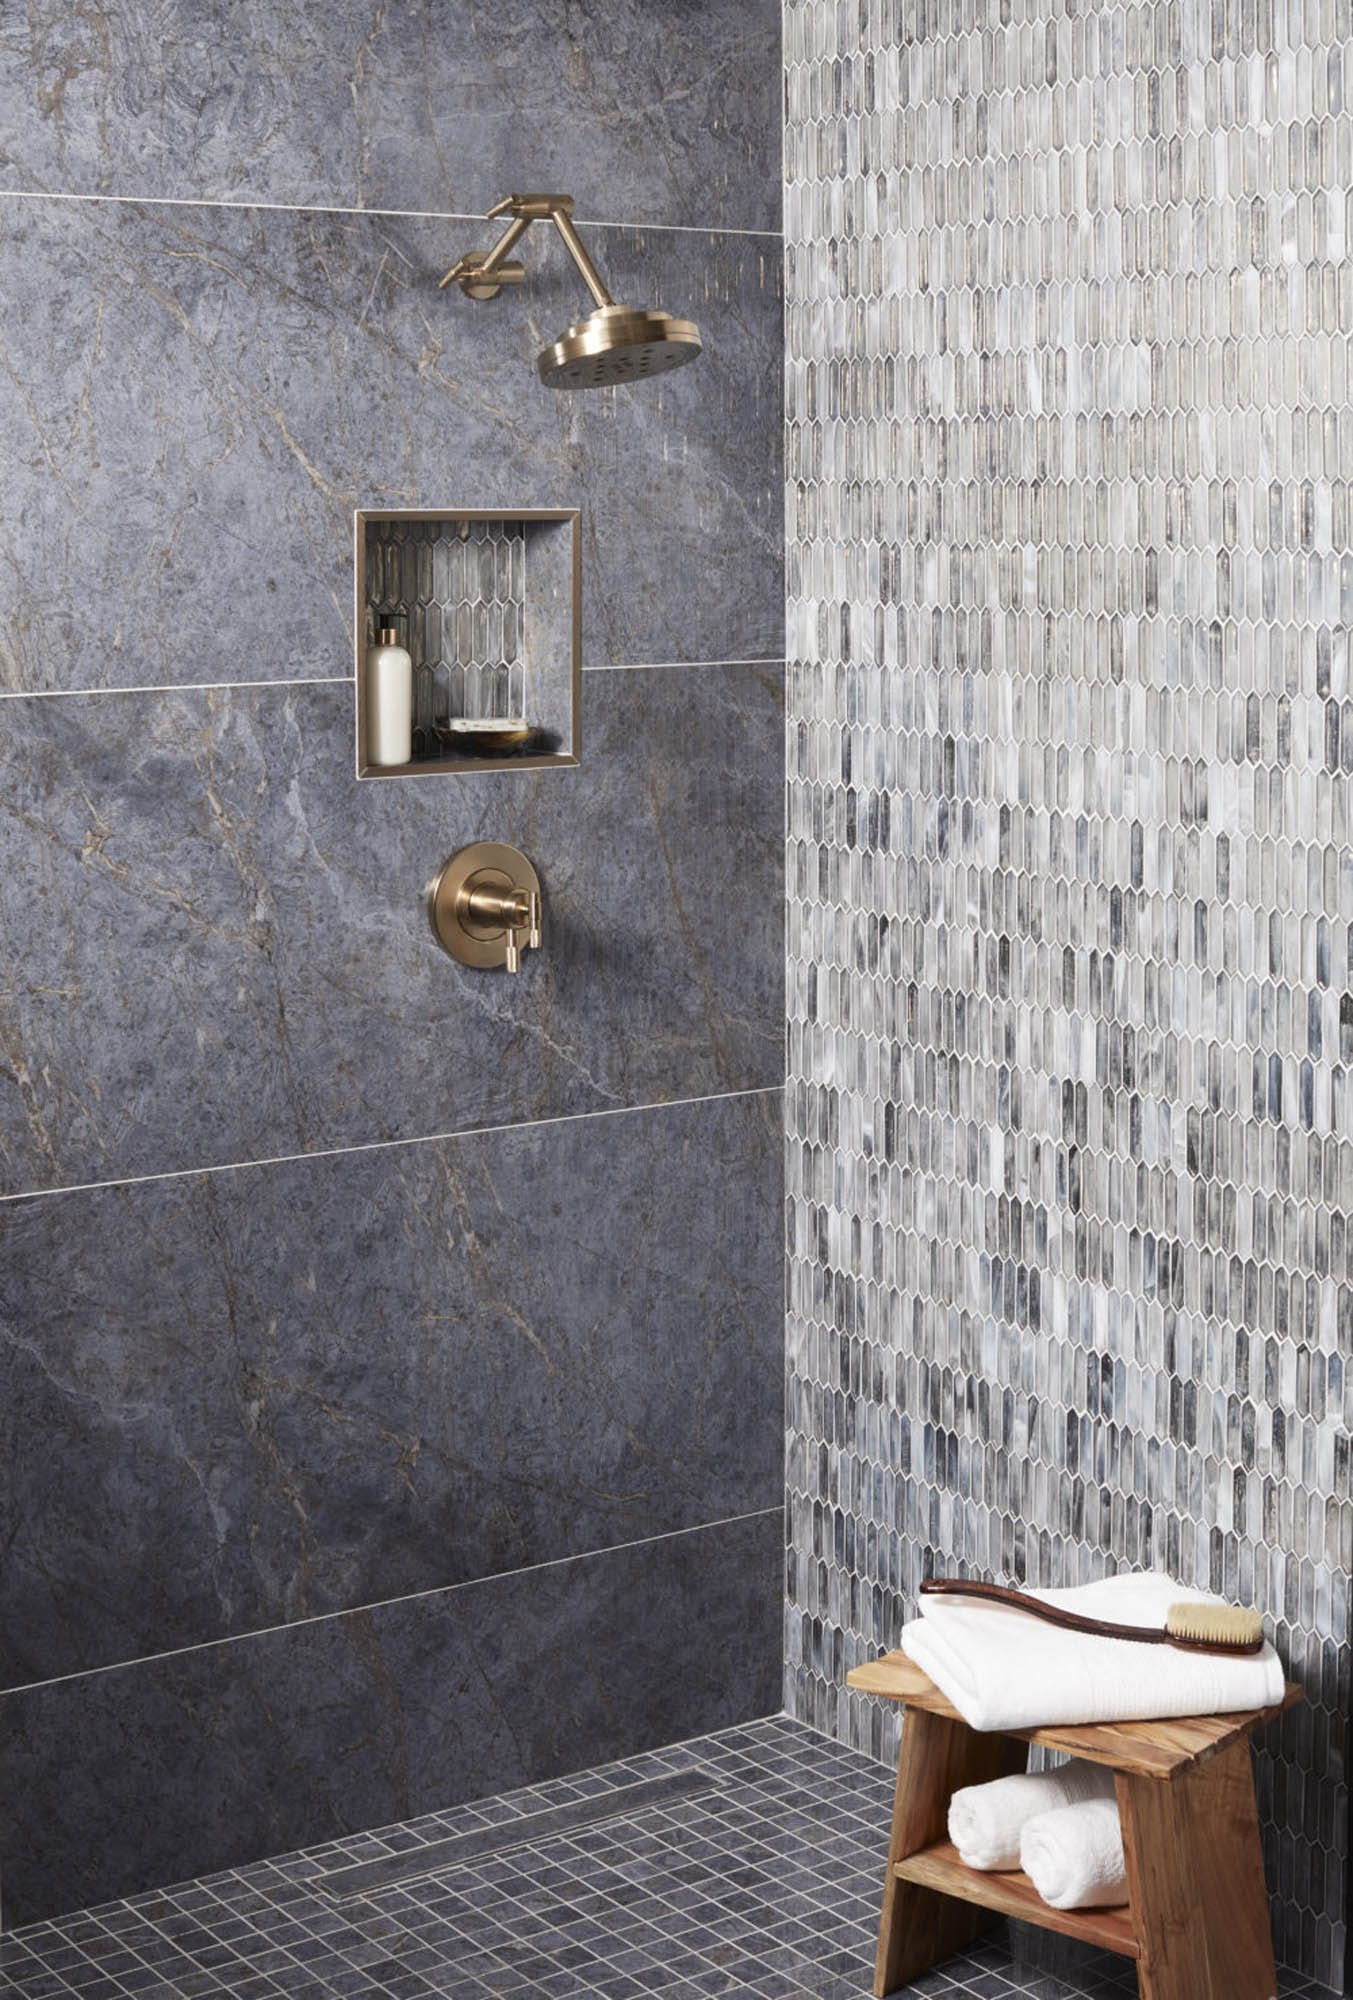 Large-format and mosaic shower